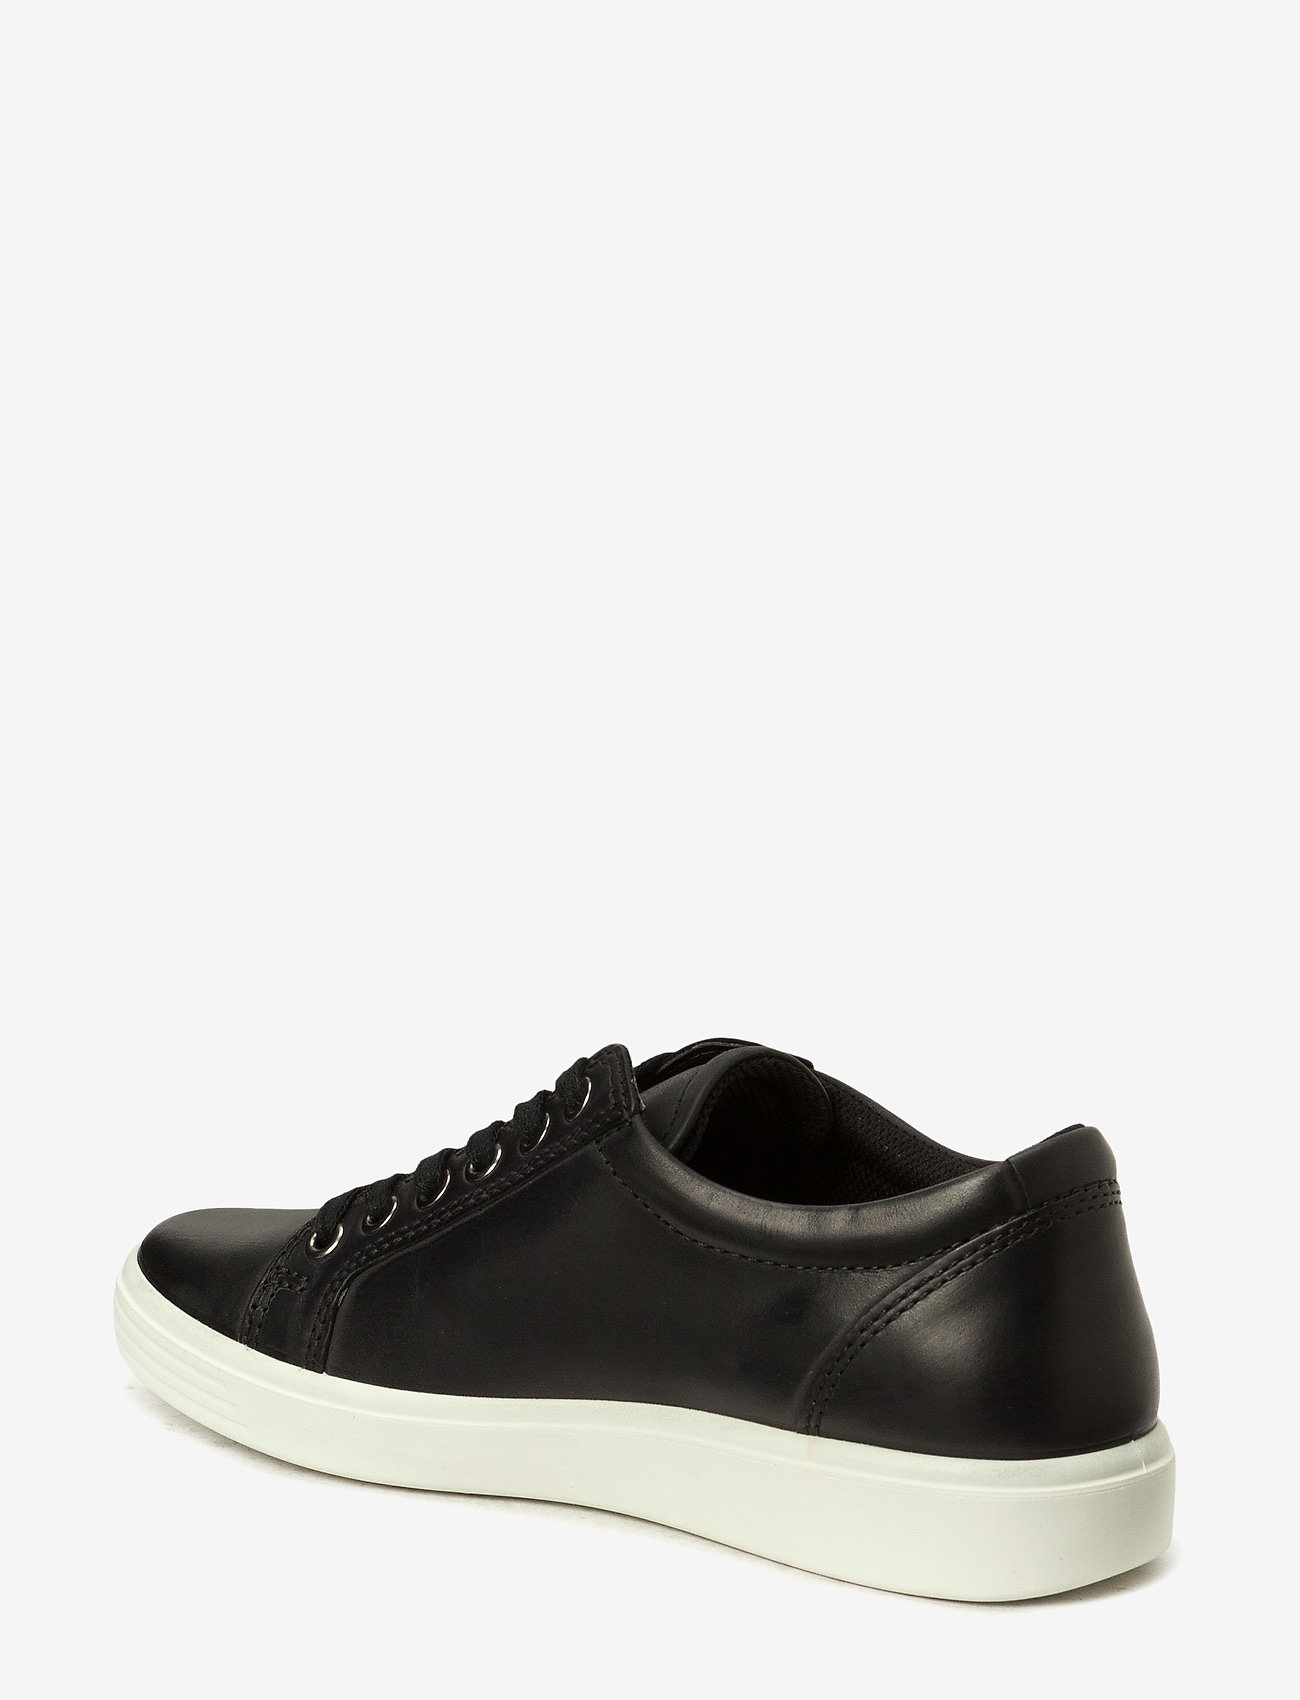 ECCO - S7 TEEN - sneakers - black - 1